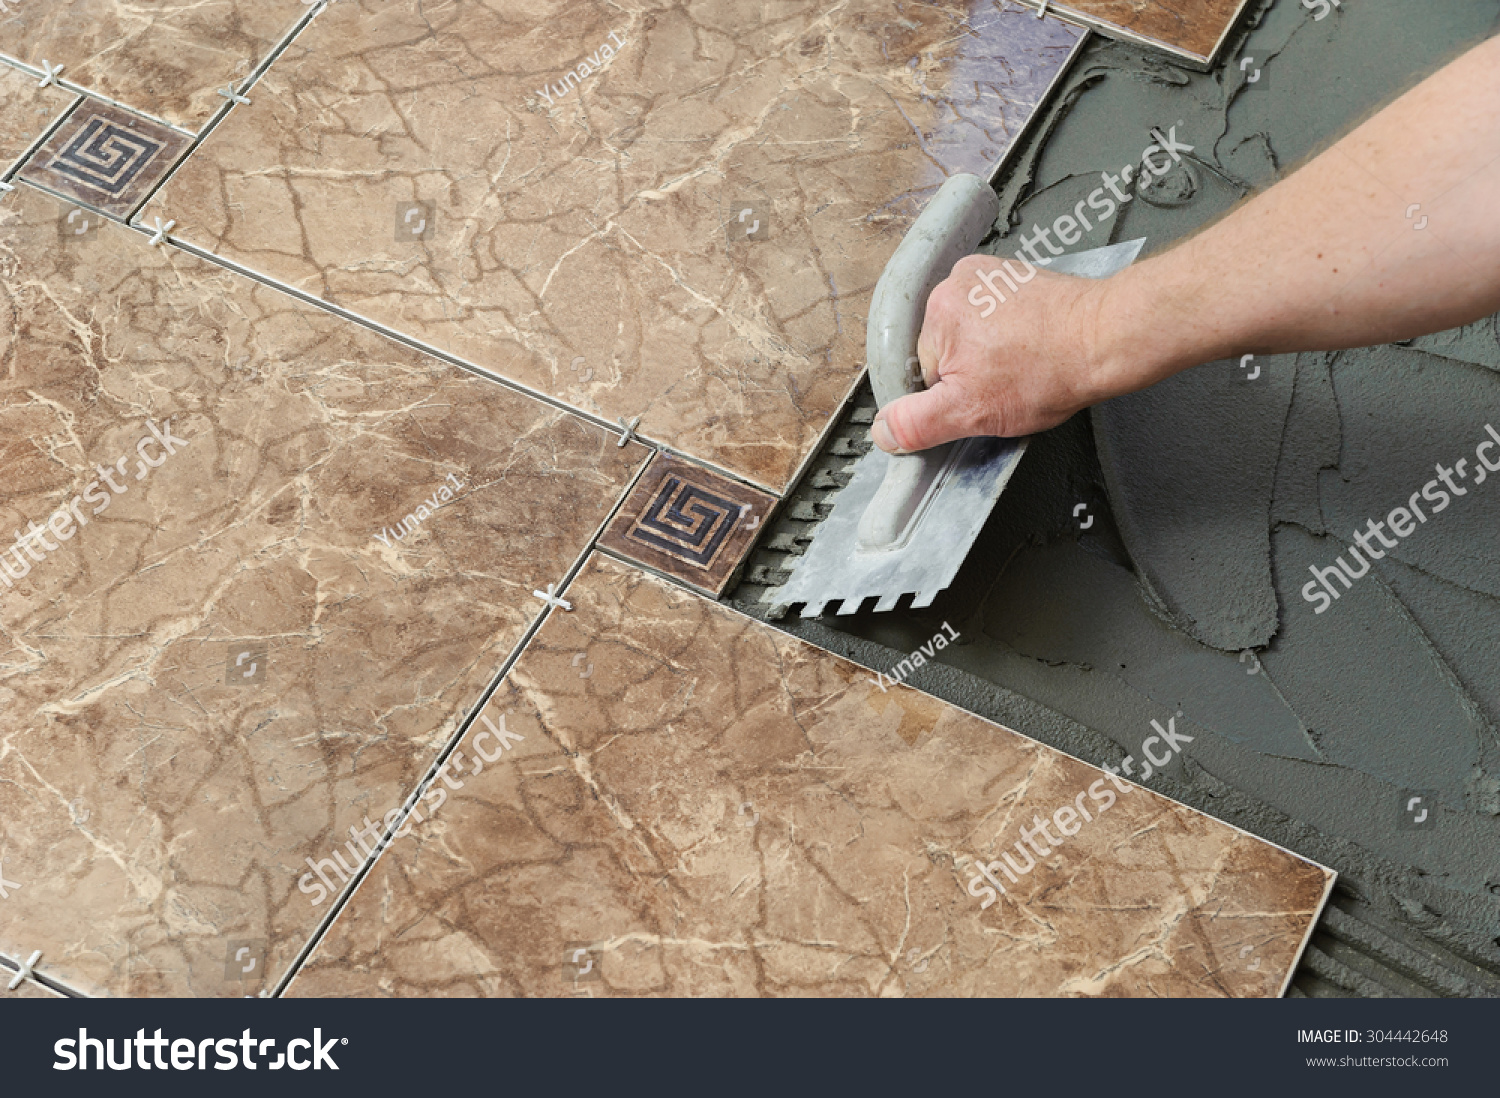 Laying Ceramic Tiles Troweling Adhesive Onto Stock Photo Edit Now